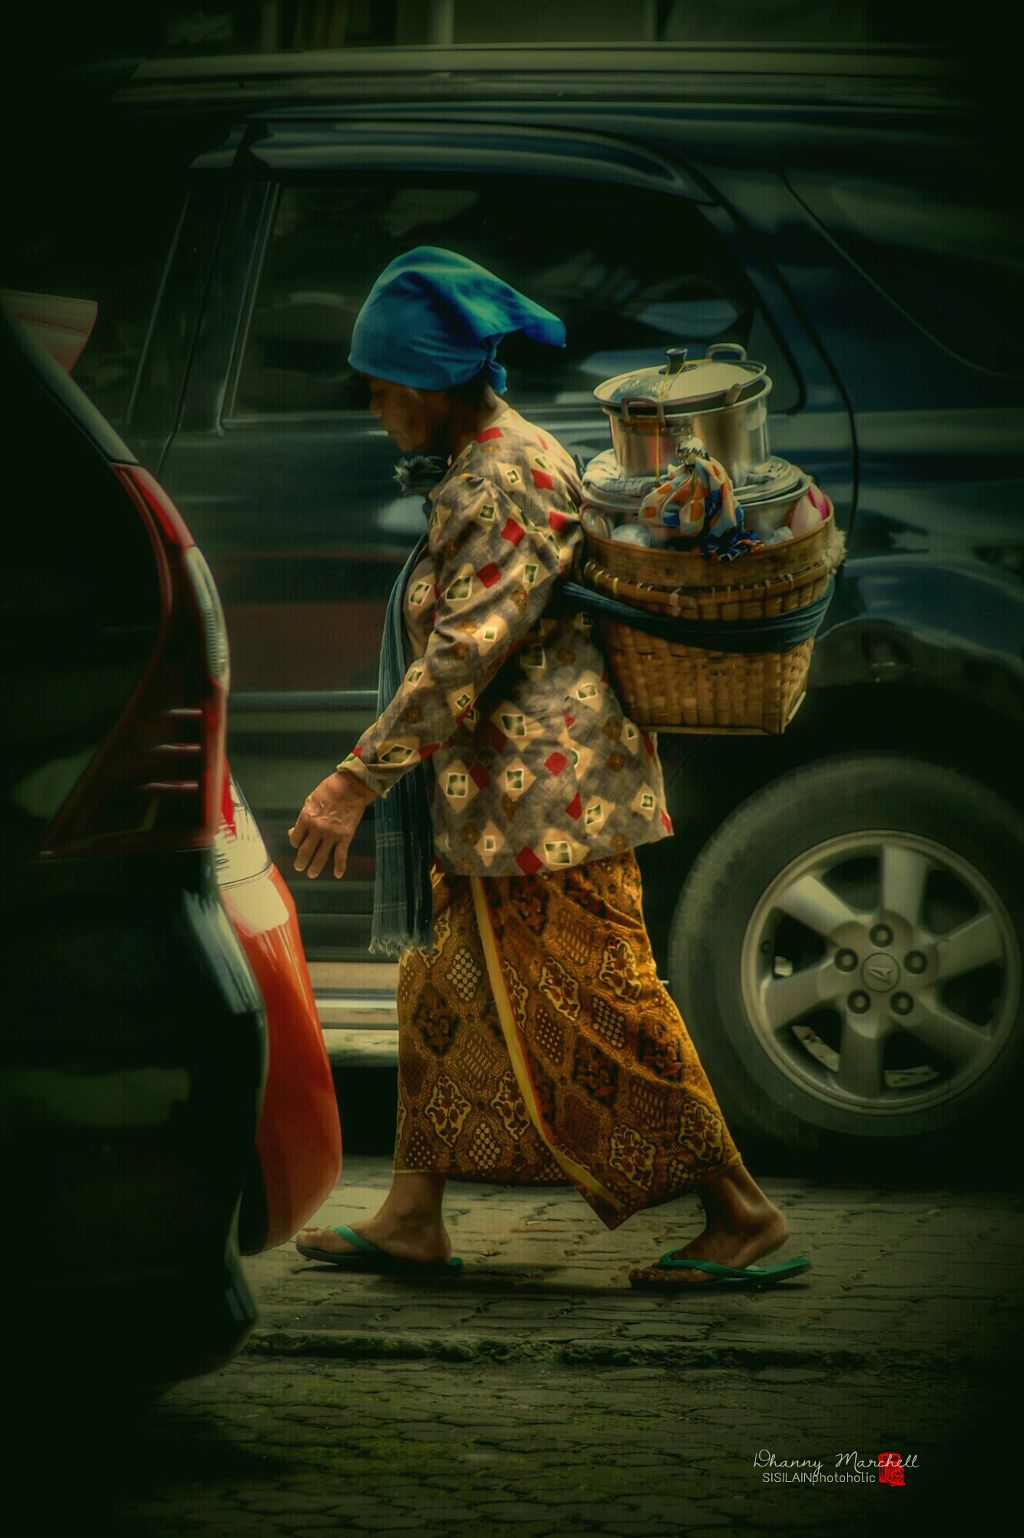 """"""" Find Customers """" thousands of kilos road she traveled.. skip hurdle to feed their children..  #wildlife #vintagefinds #contrastlife #interesting  #people #spirit #street #photography"""